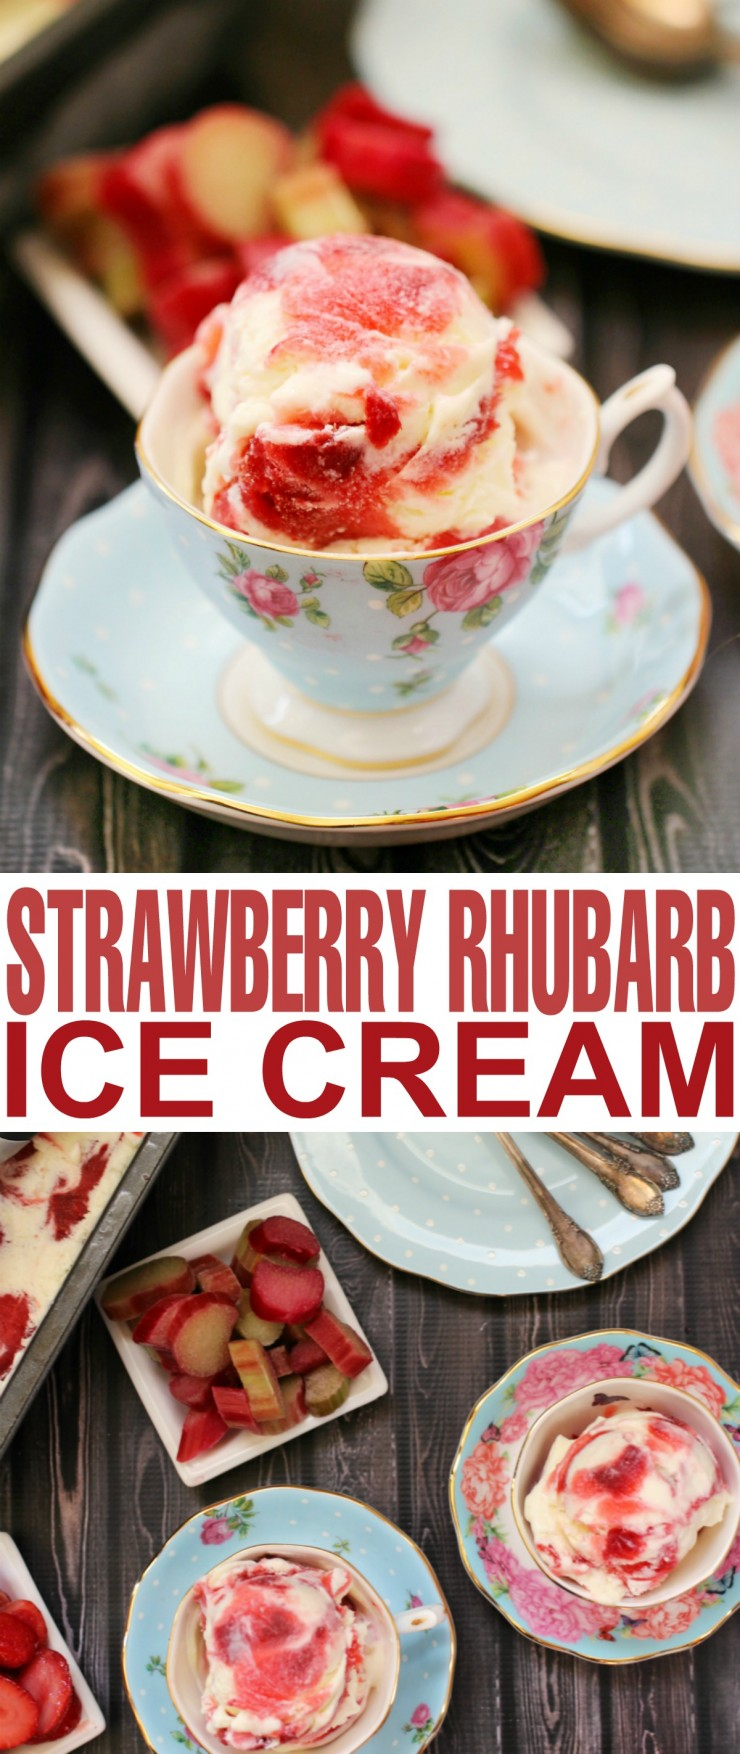 This creamy and decadent strawberry rhubarb ice cream is filled with bright bursts of fresh summer fruit. Satisfy your sweet tooth and stay cool with this incredible dessert.